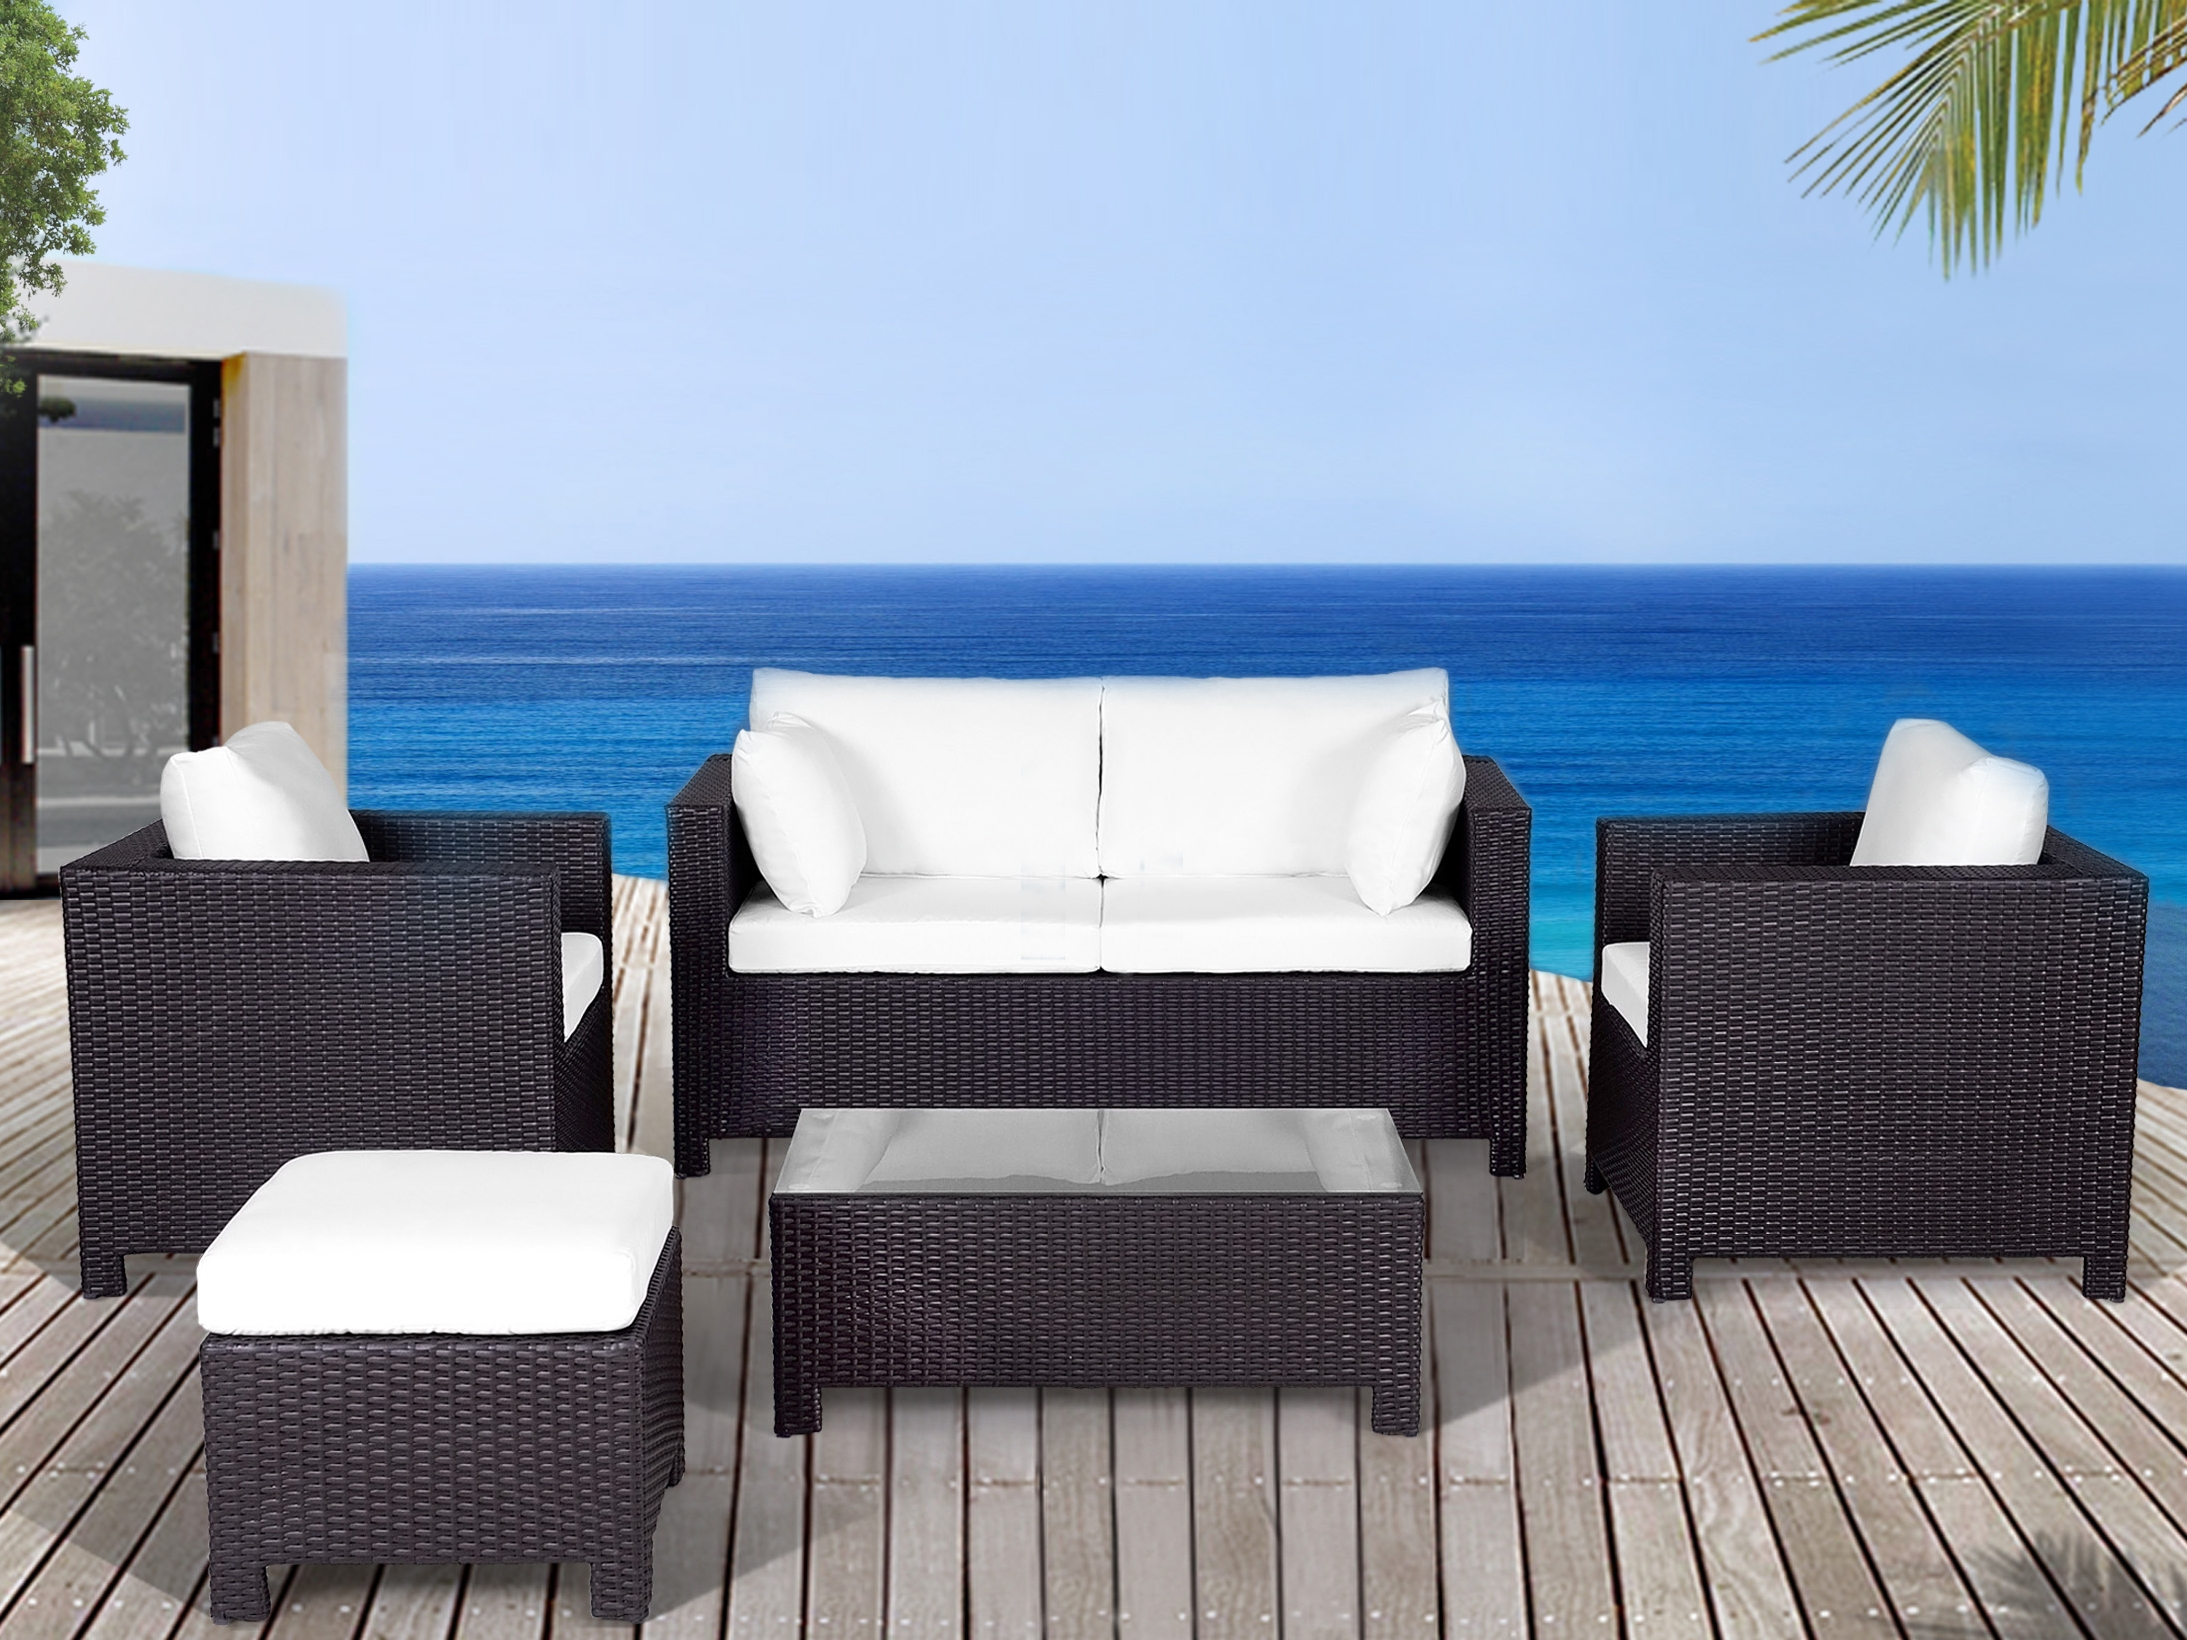 Overstocks Furniture | Overstock Outdoor Furniture | Sofa Bed Overstock